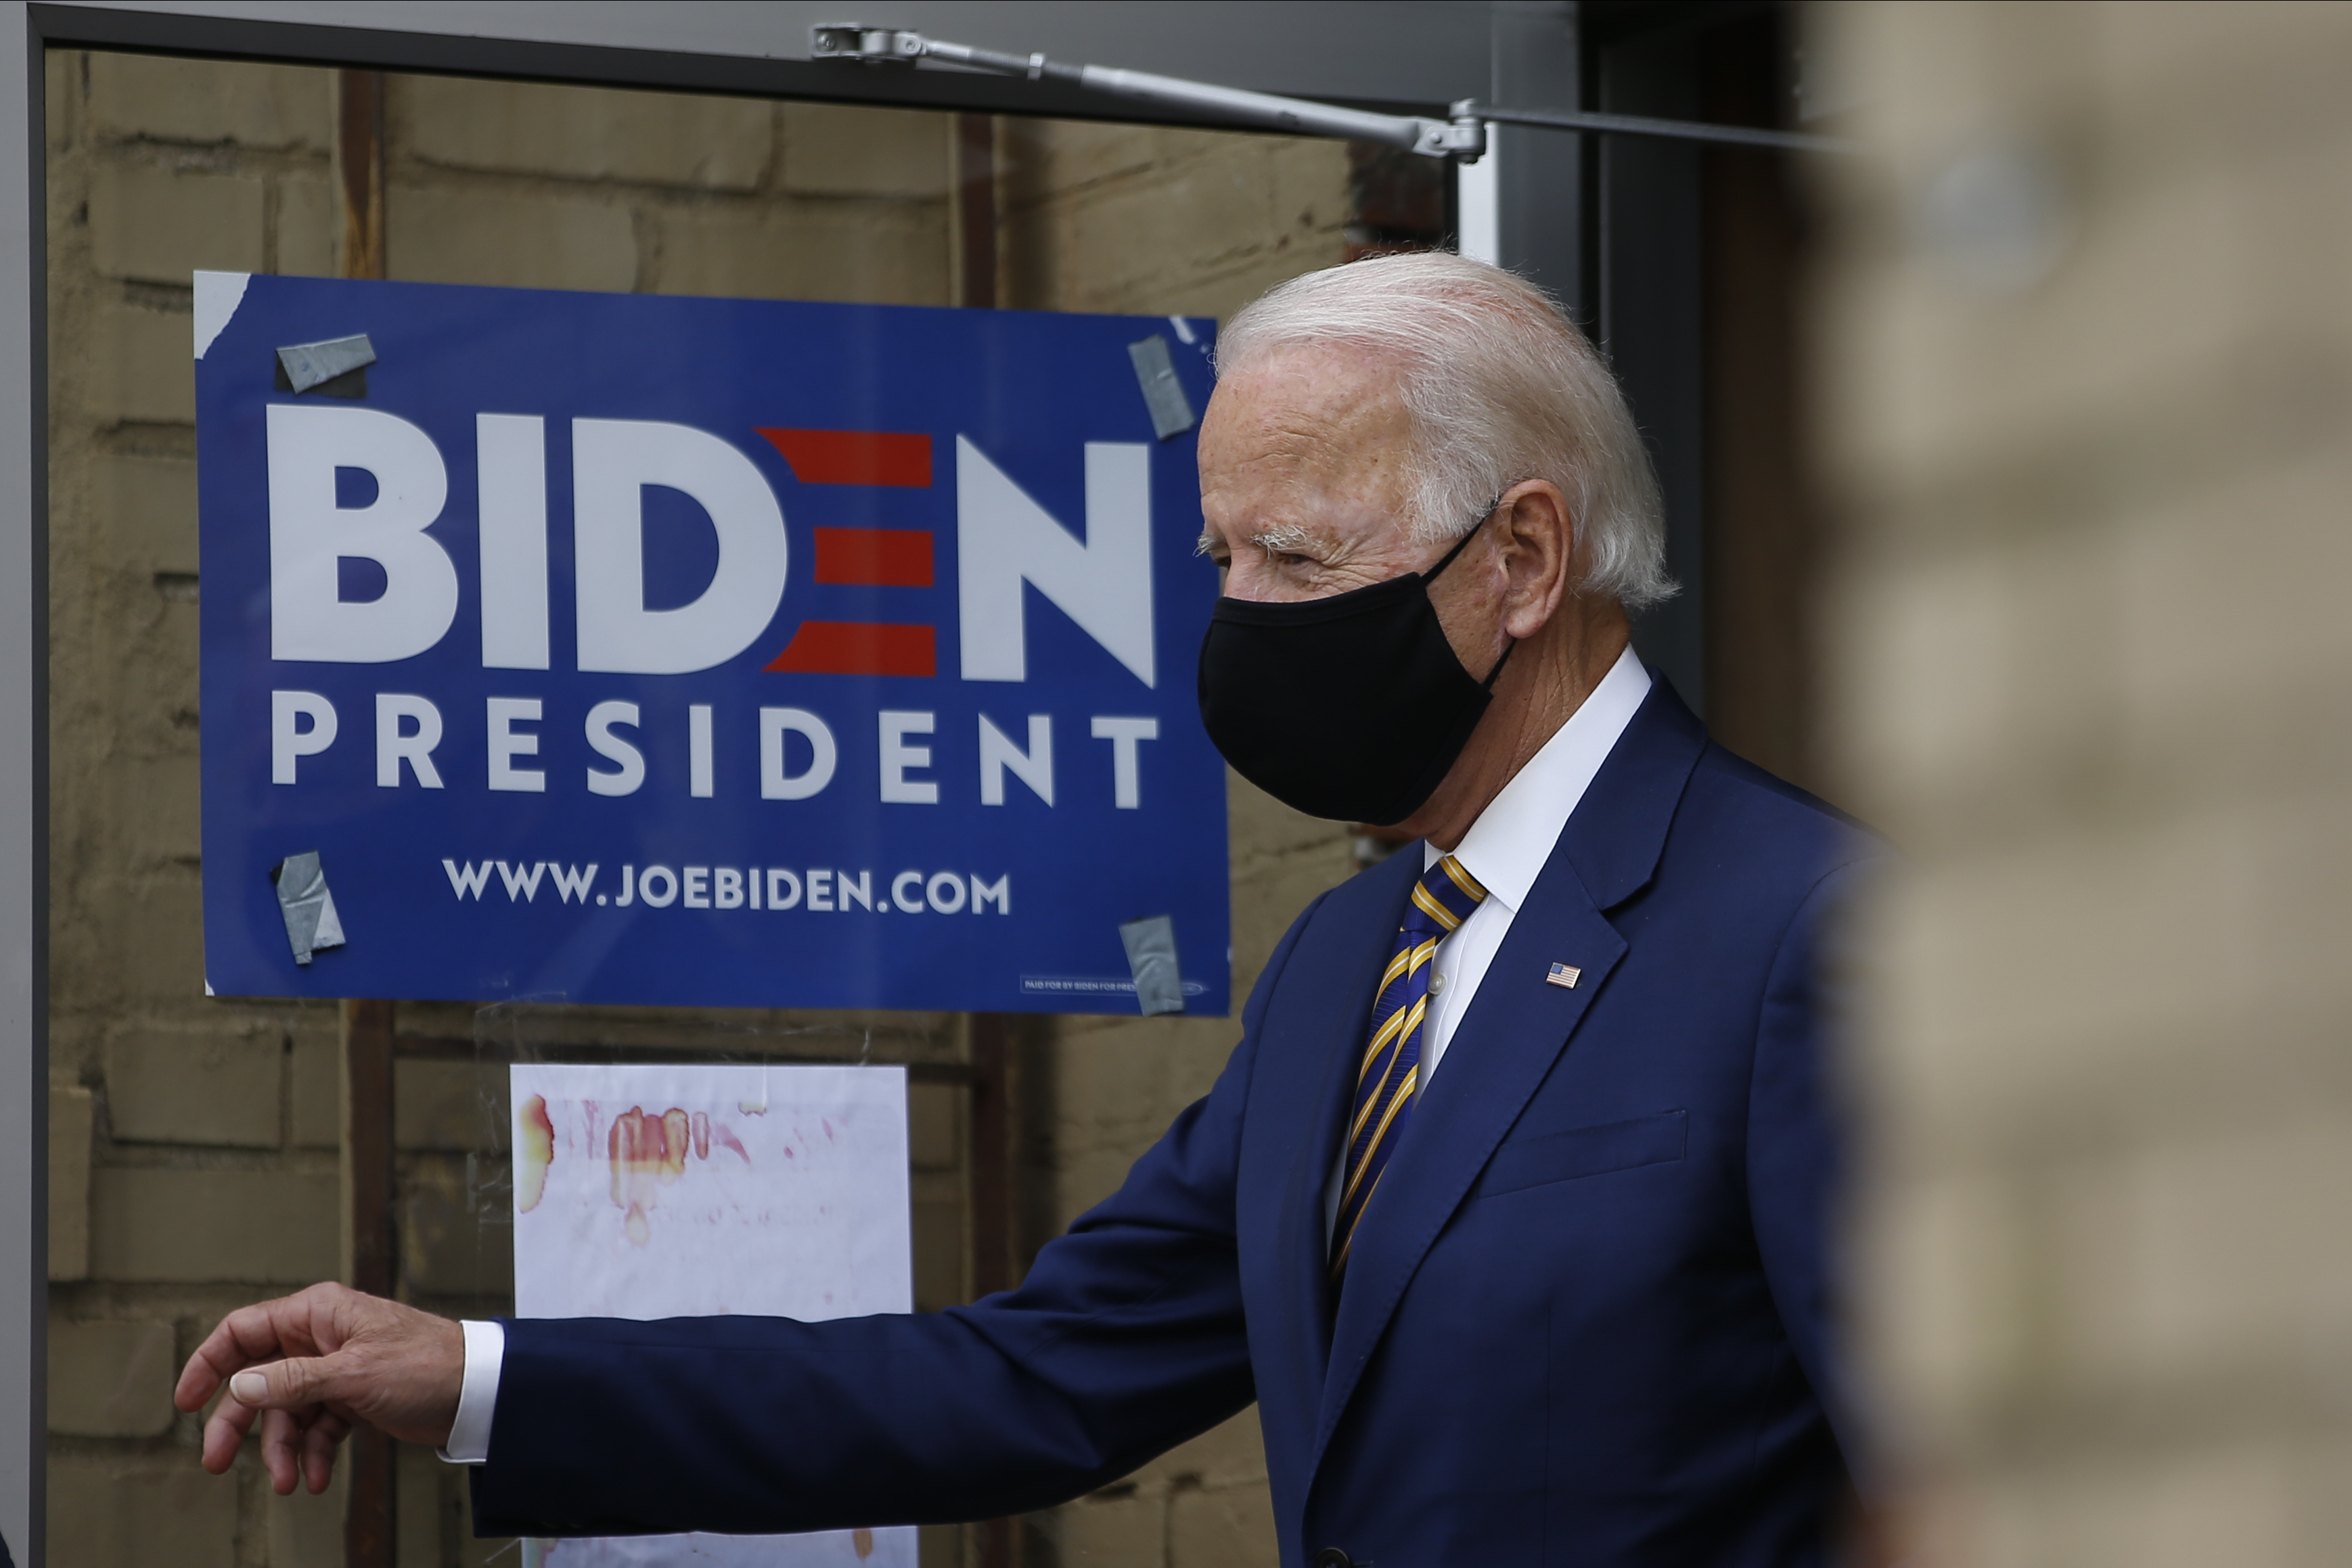 Joe Biden S First Major Television Ads Are Hitting The Airwaves And They Re Running In Florida